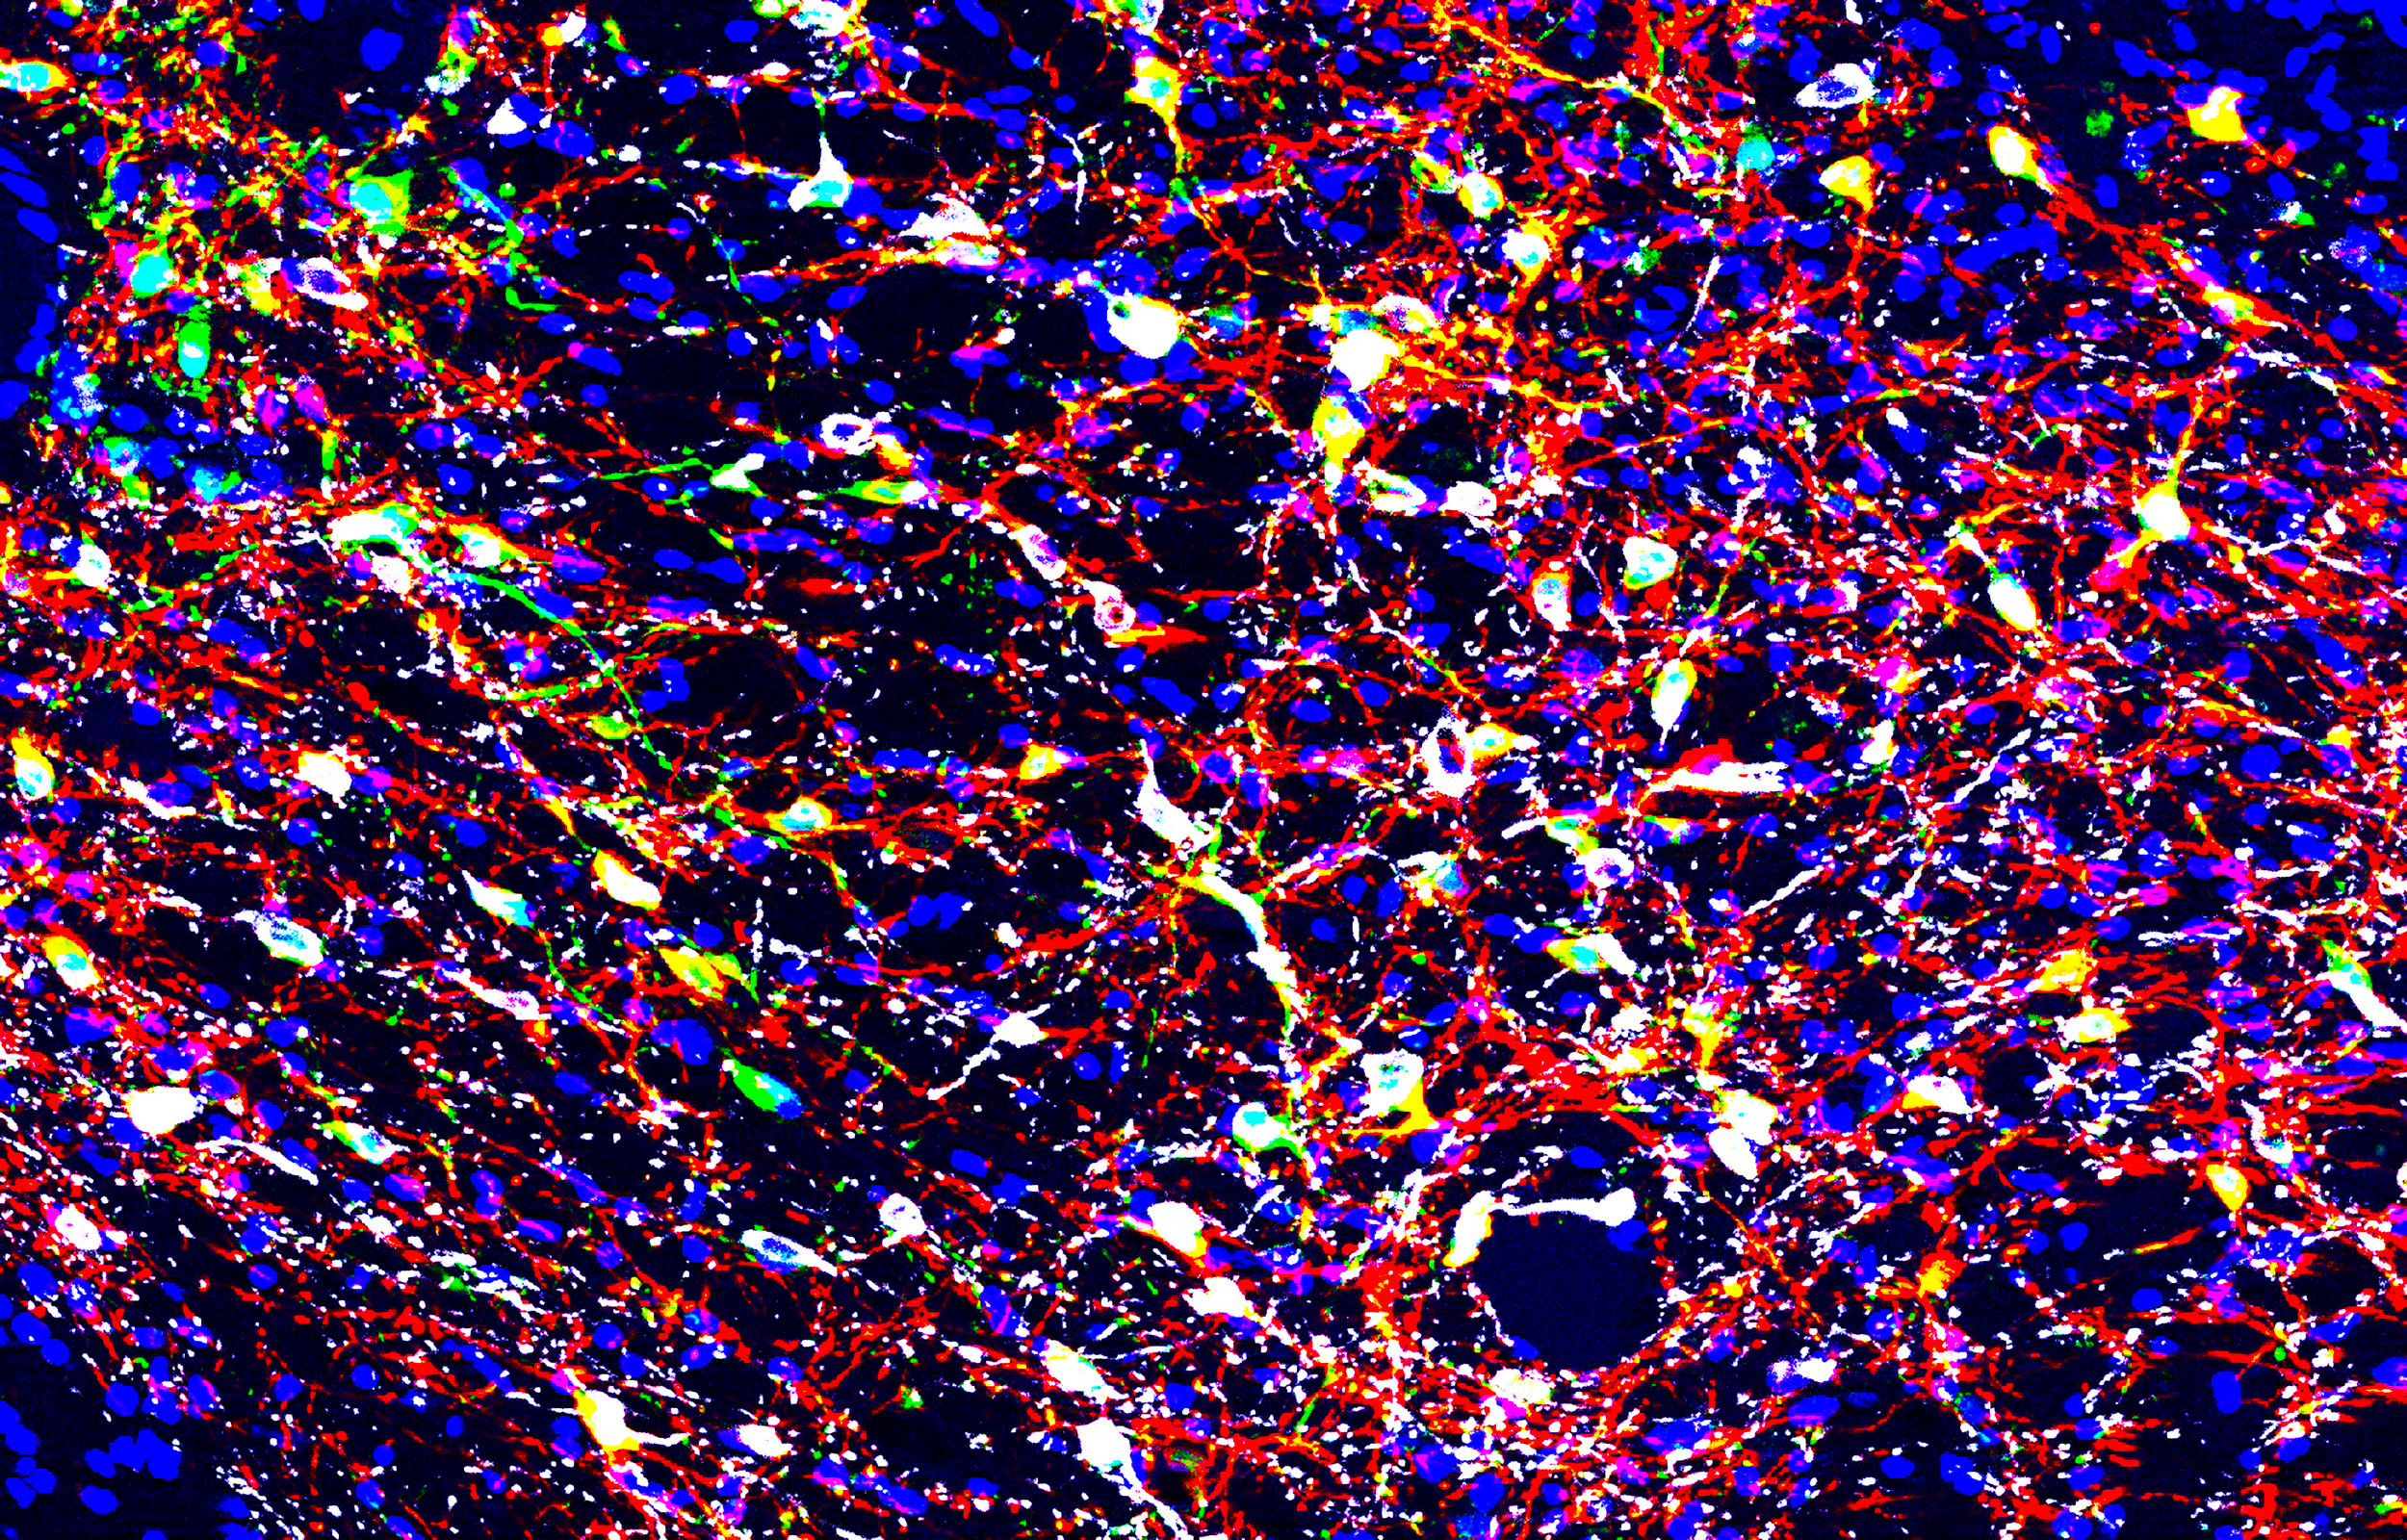 Image of the ventral tegmental area in the midbrain. Neurons (blue) were co-transfected with viruses containing GCaMP6f (green) and ChrimsonR-tdTomato (red). In this preparation, they overlap with neurons stained for tyrosine hydroxylase (white).